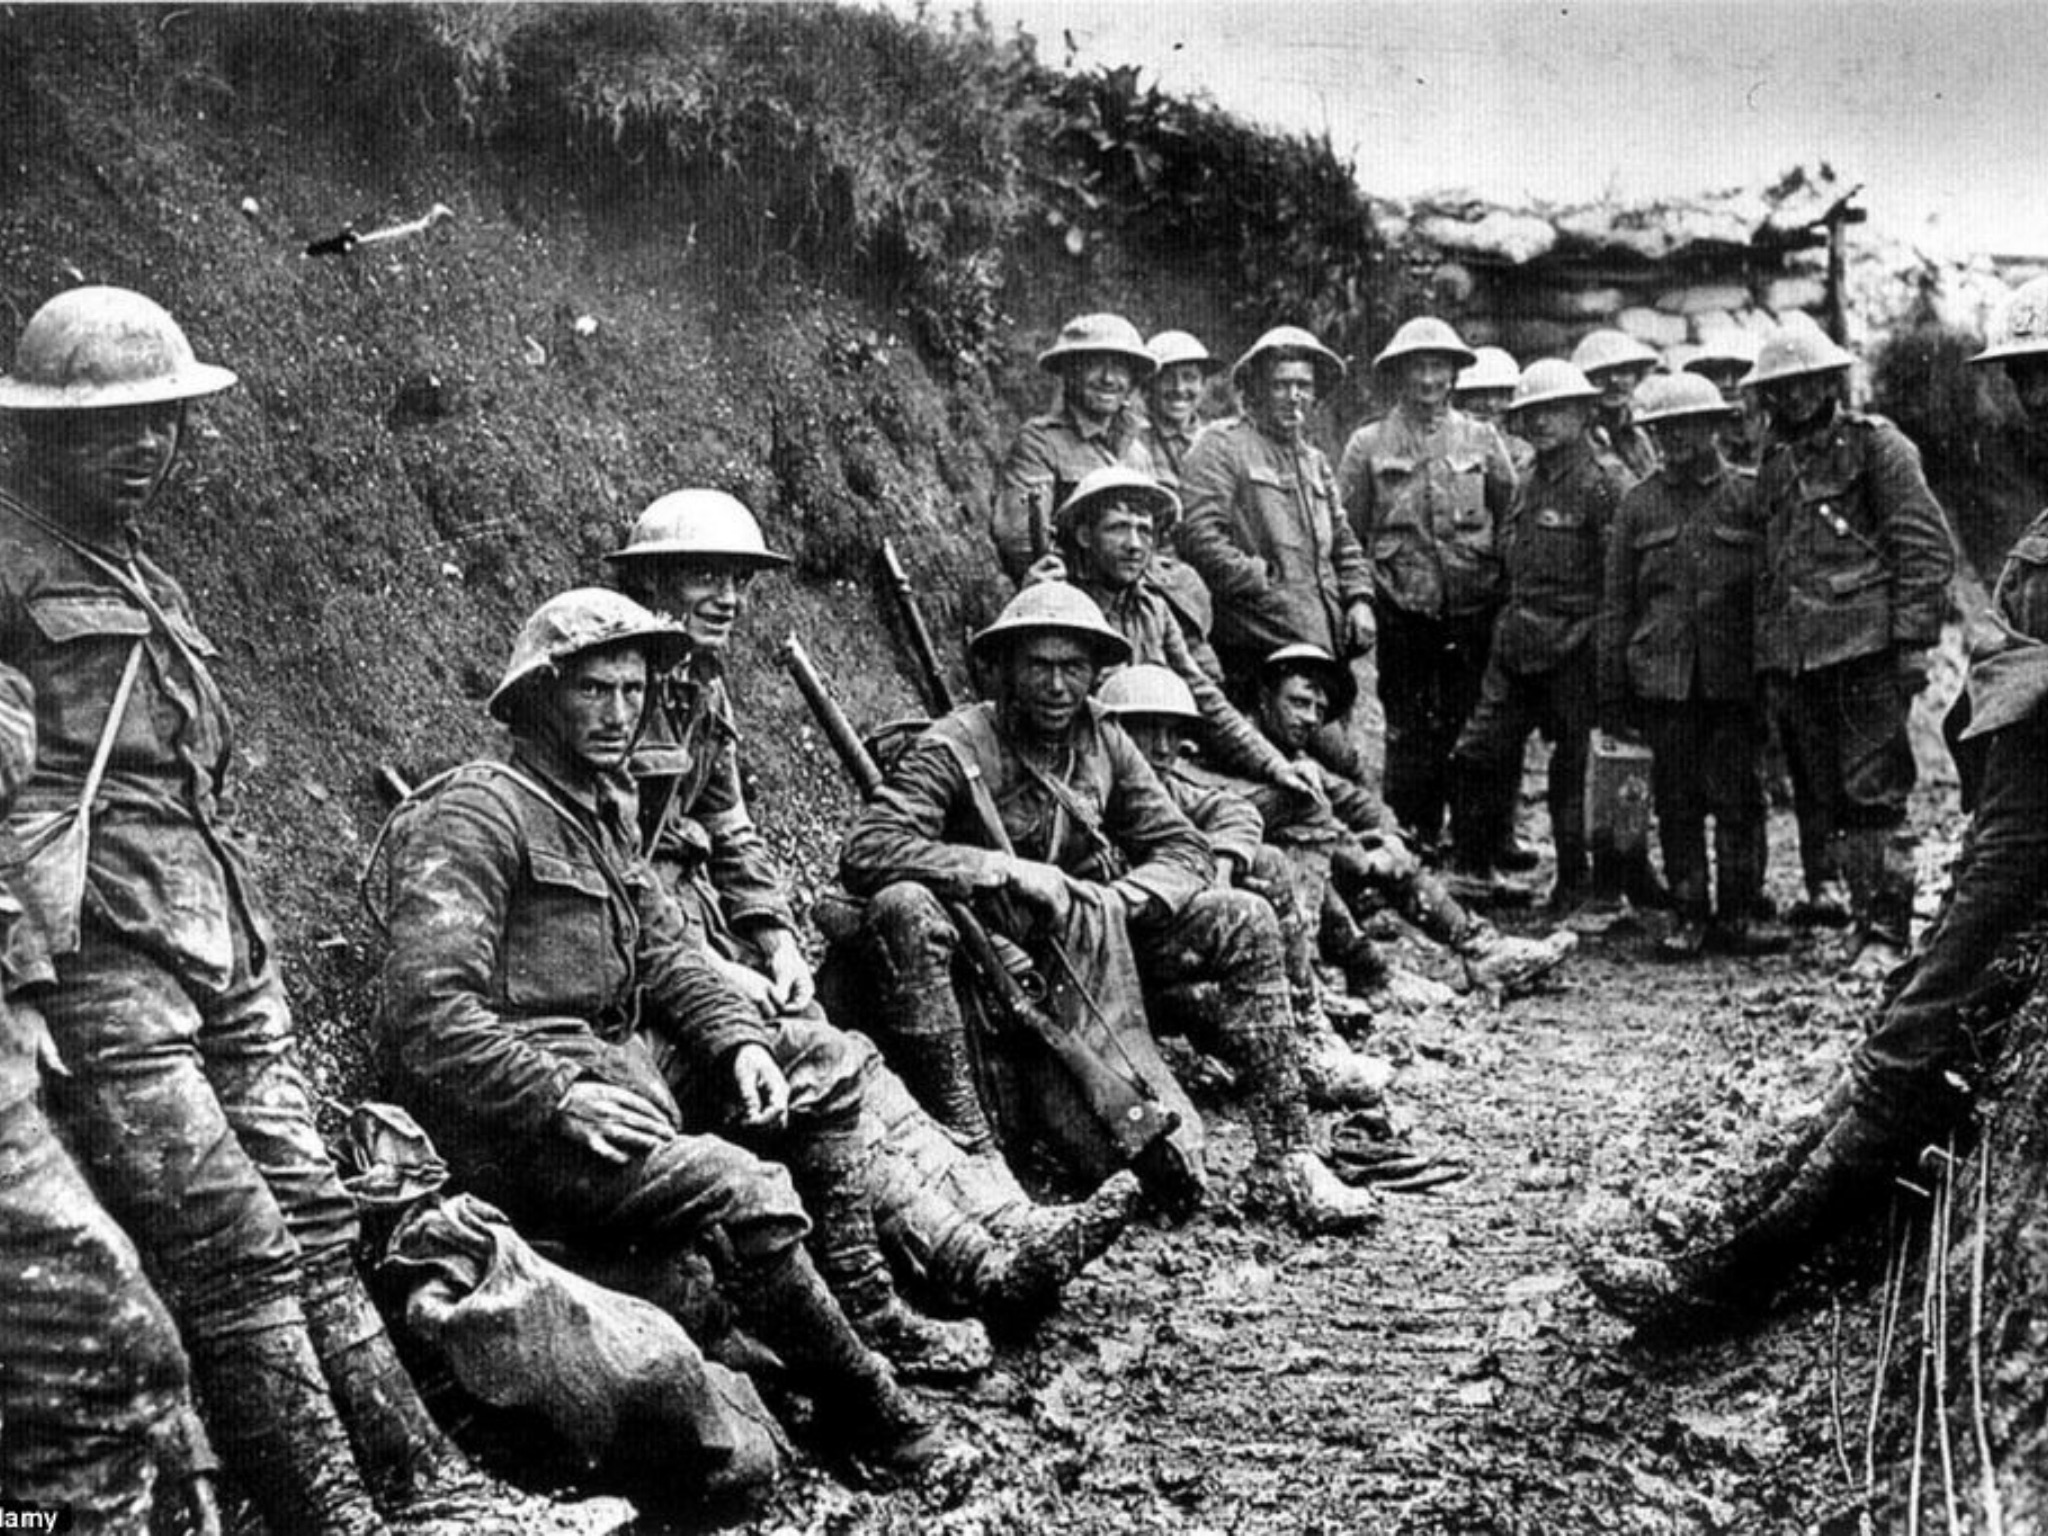 A picture of several soldiers in a trench during WWI